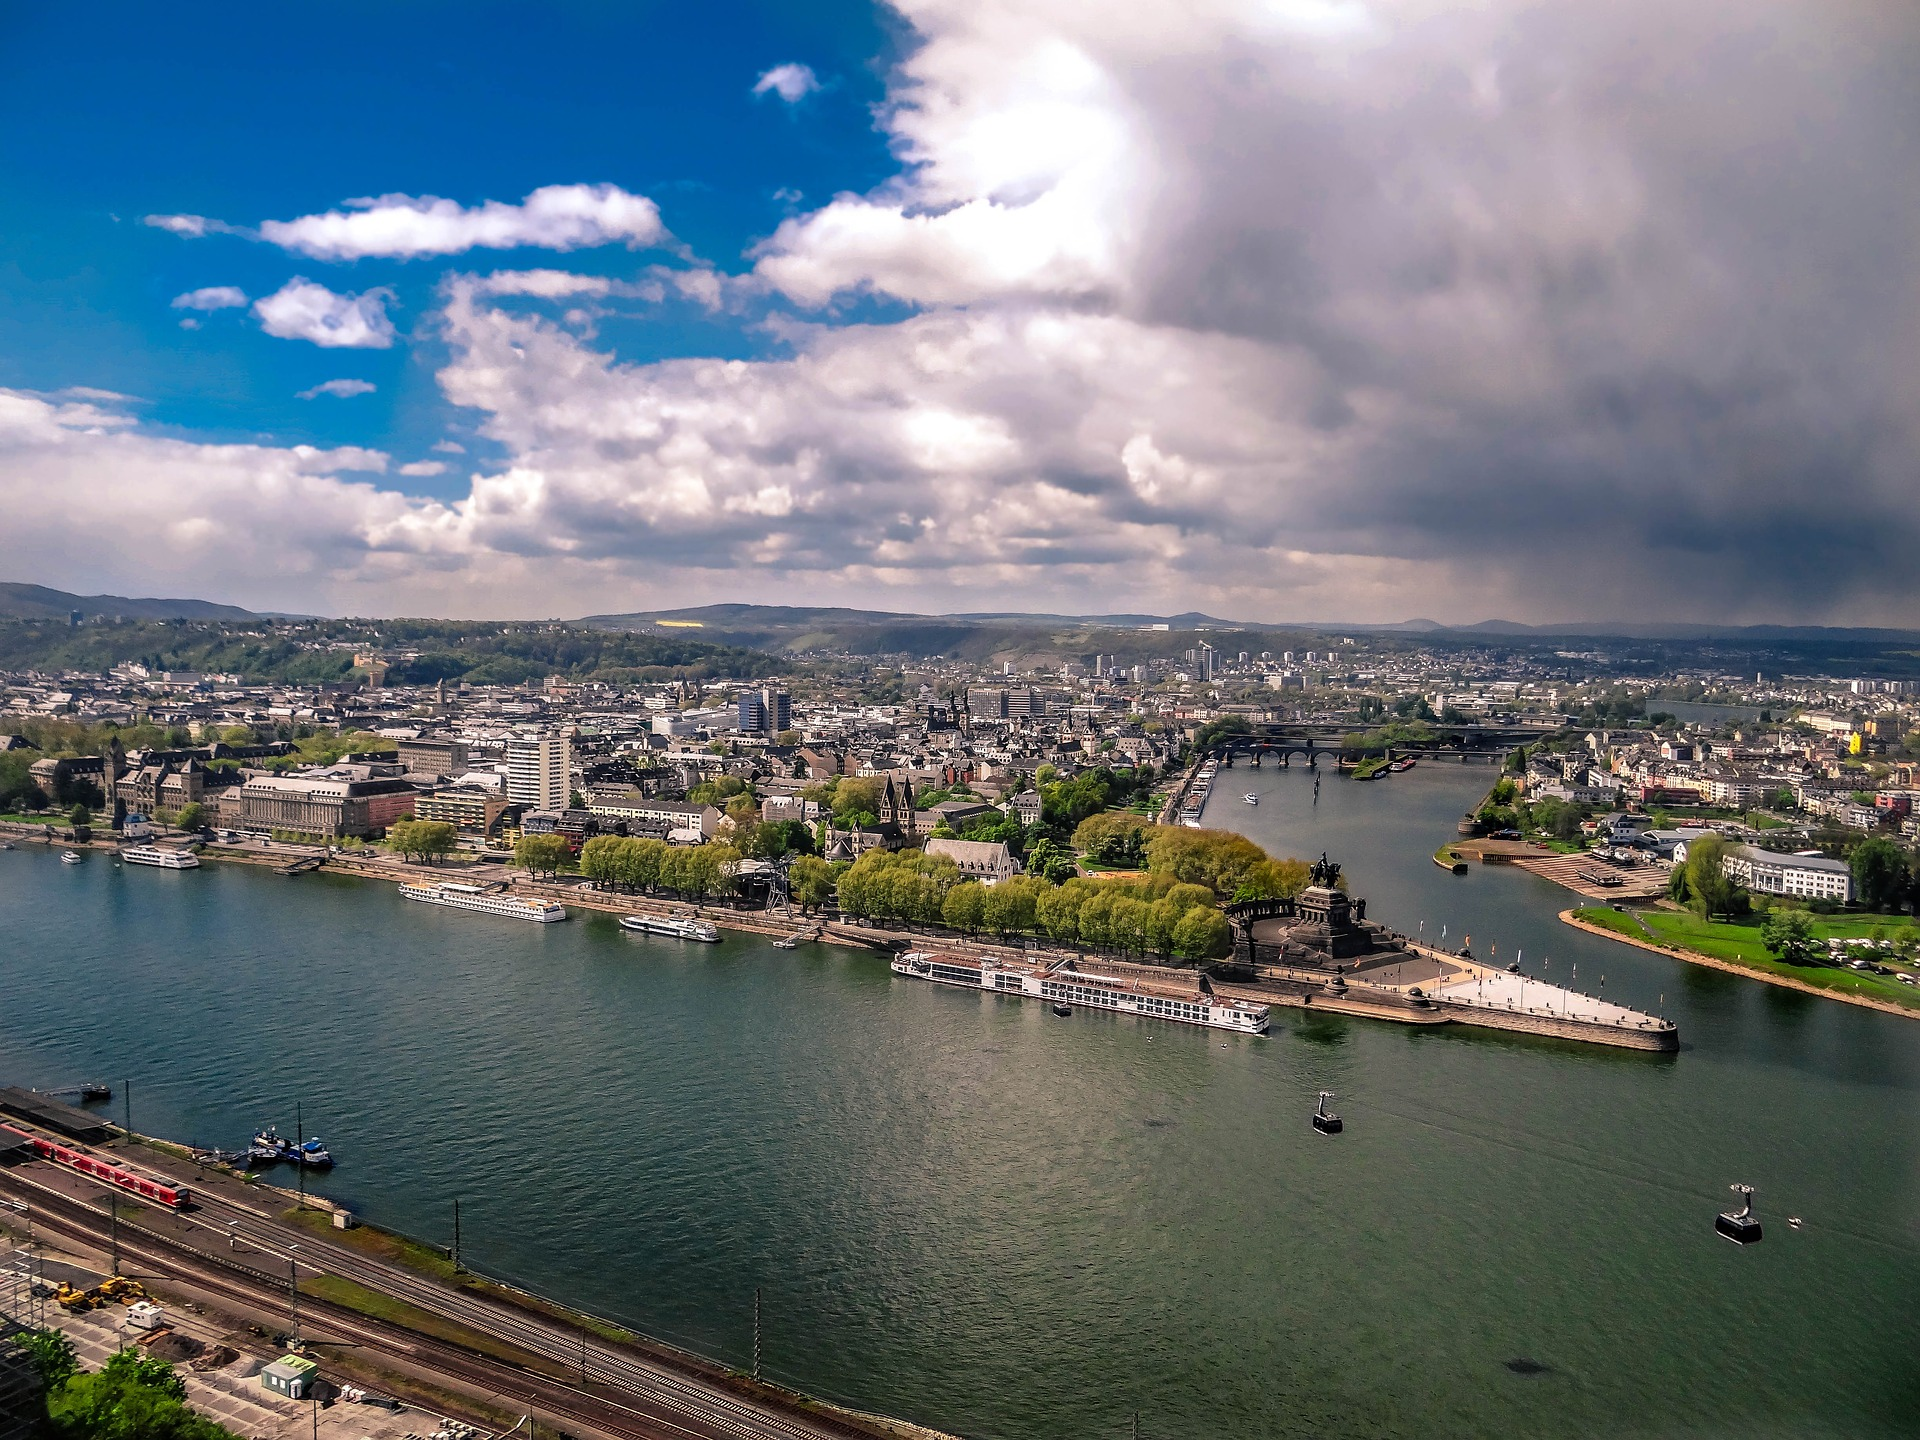 koblenz-from-the-ehrenbreitstein-fortress-2254672_1920